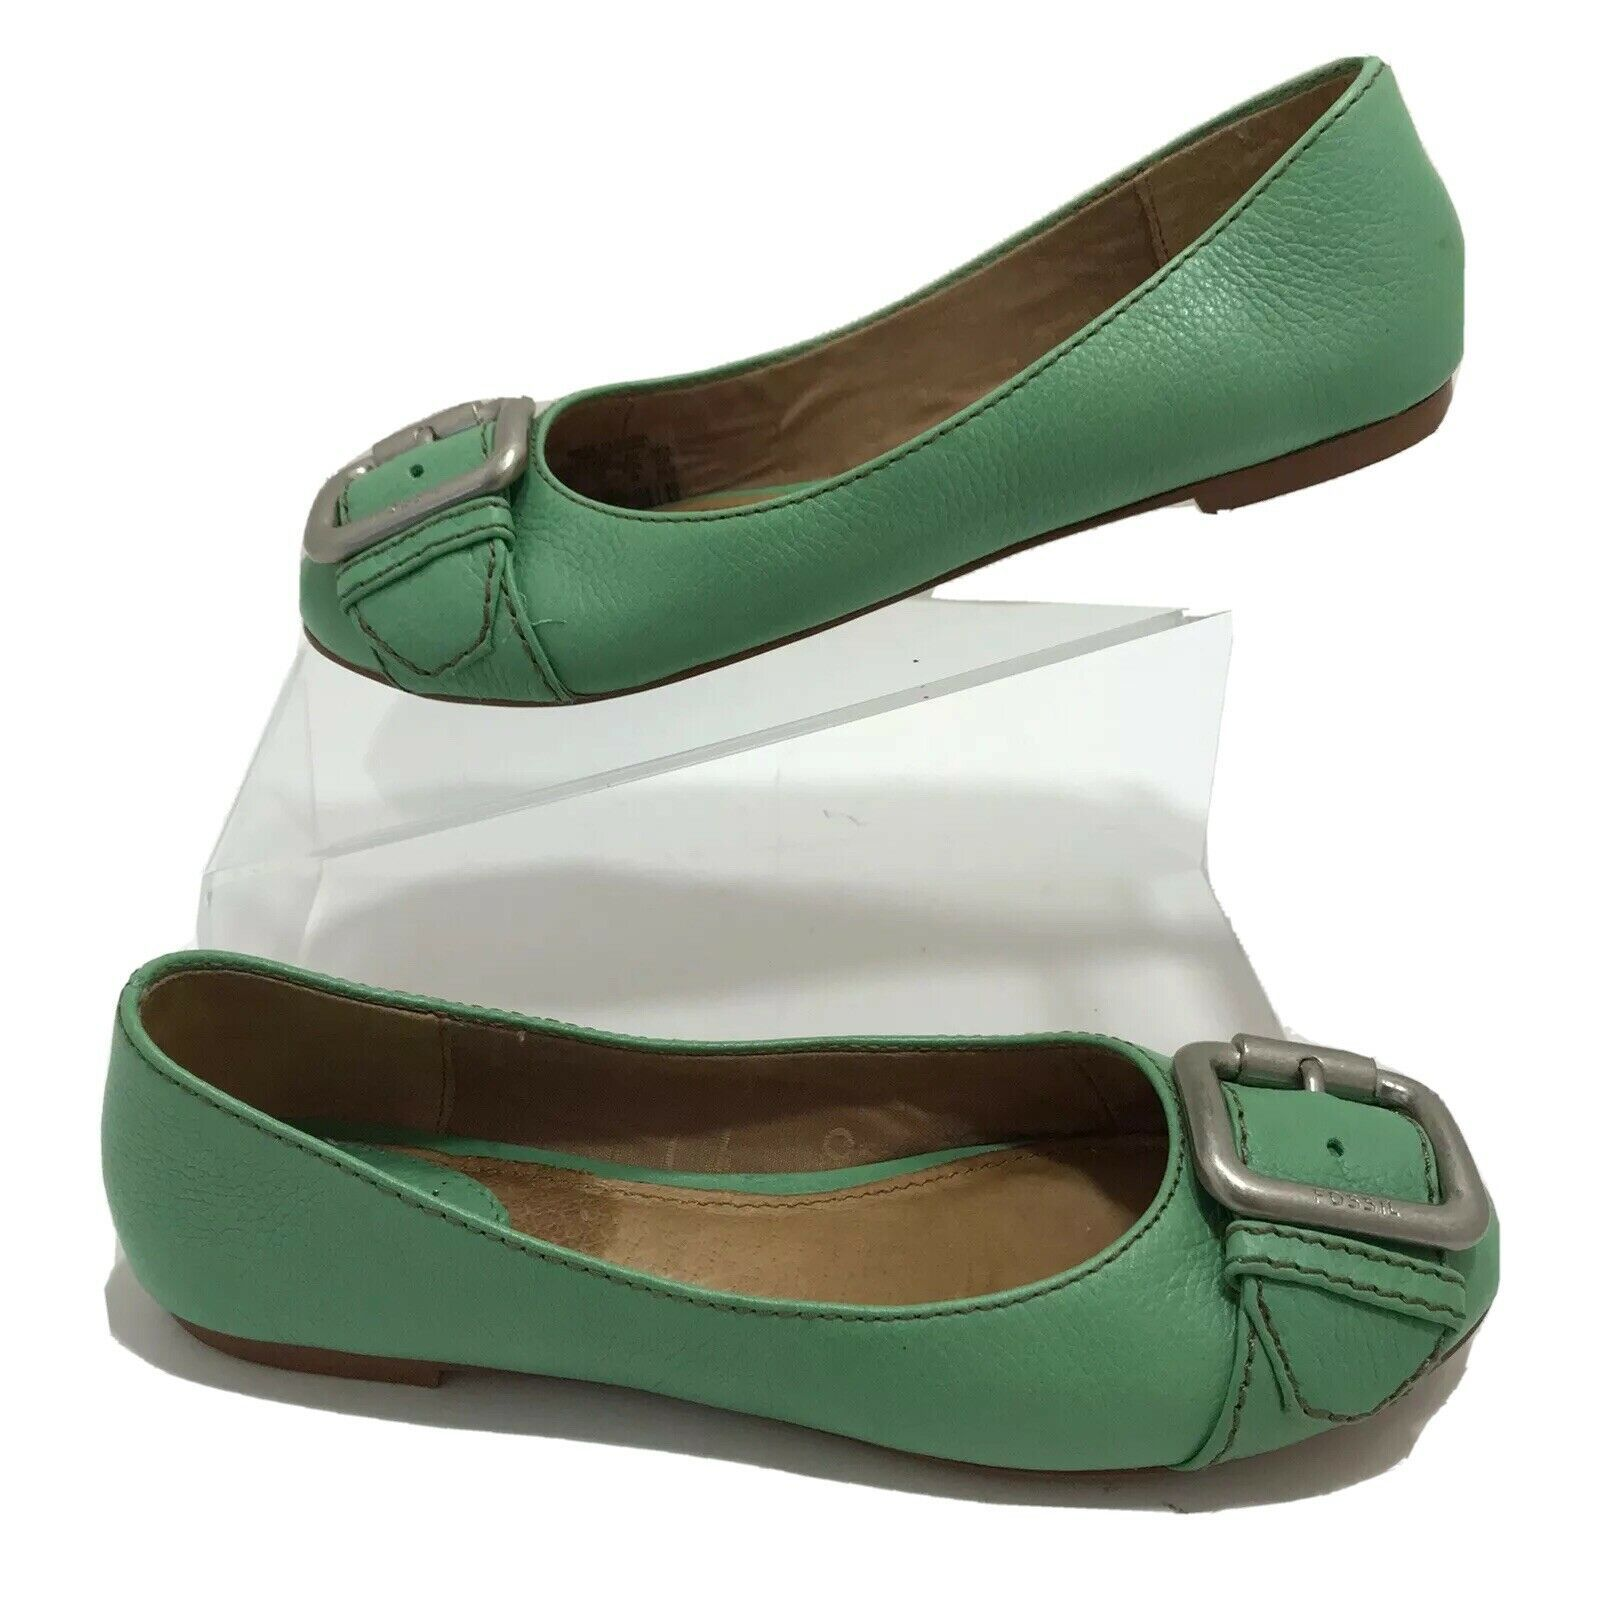 Primary image for Fossil Womens Ballet Flats Green Leather Front Pewter Buckle SlipOn Shoe 6